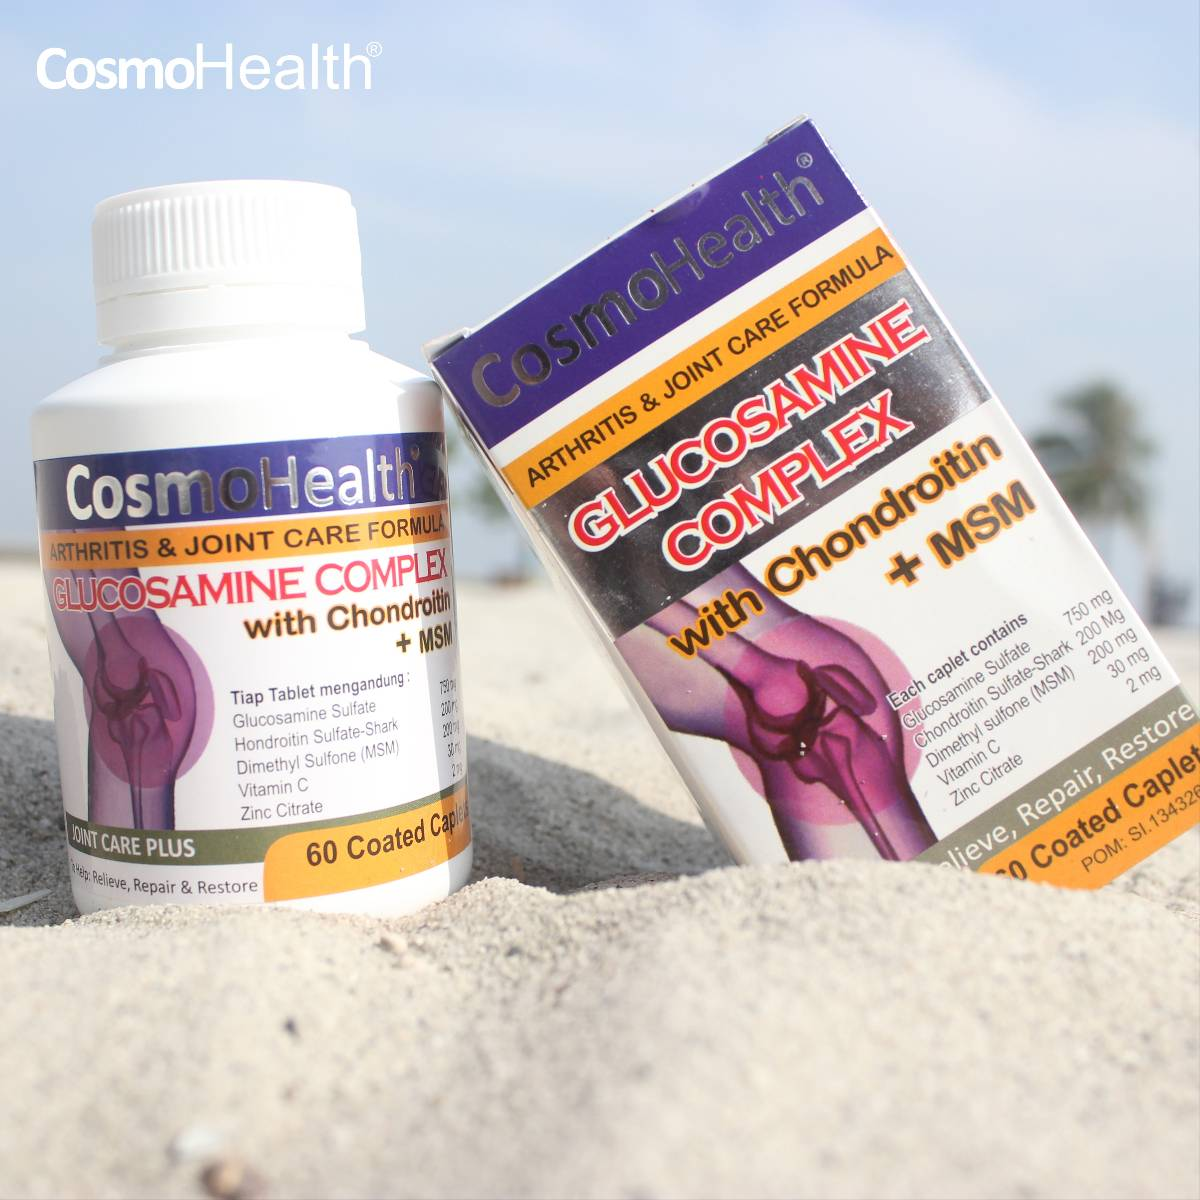 Cosmohealth Glucosamine Complex With Chondroitin + Msm 60 Coated Caplets (6 Botol)